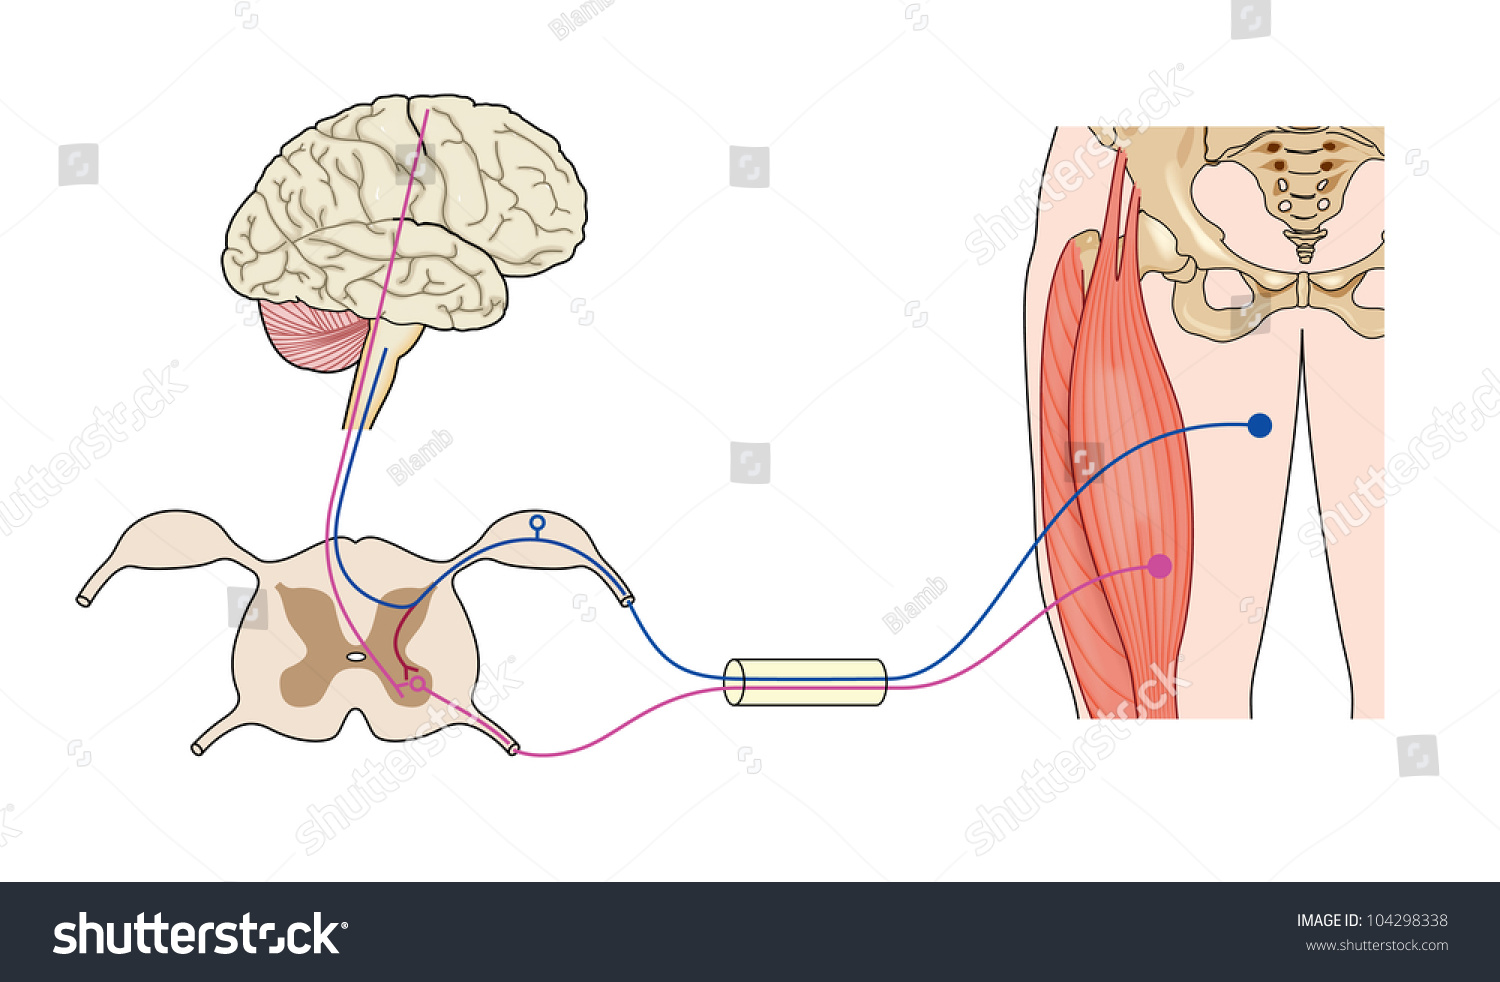 Control Muscle Showing Nerve Paths Brain Stock Illustration